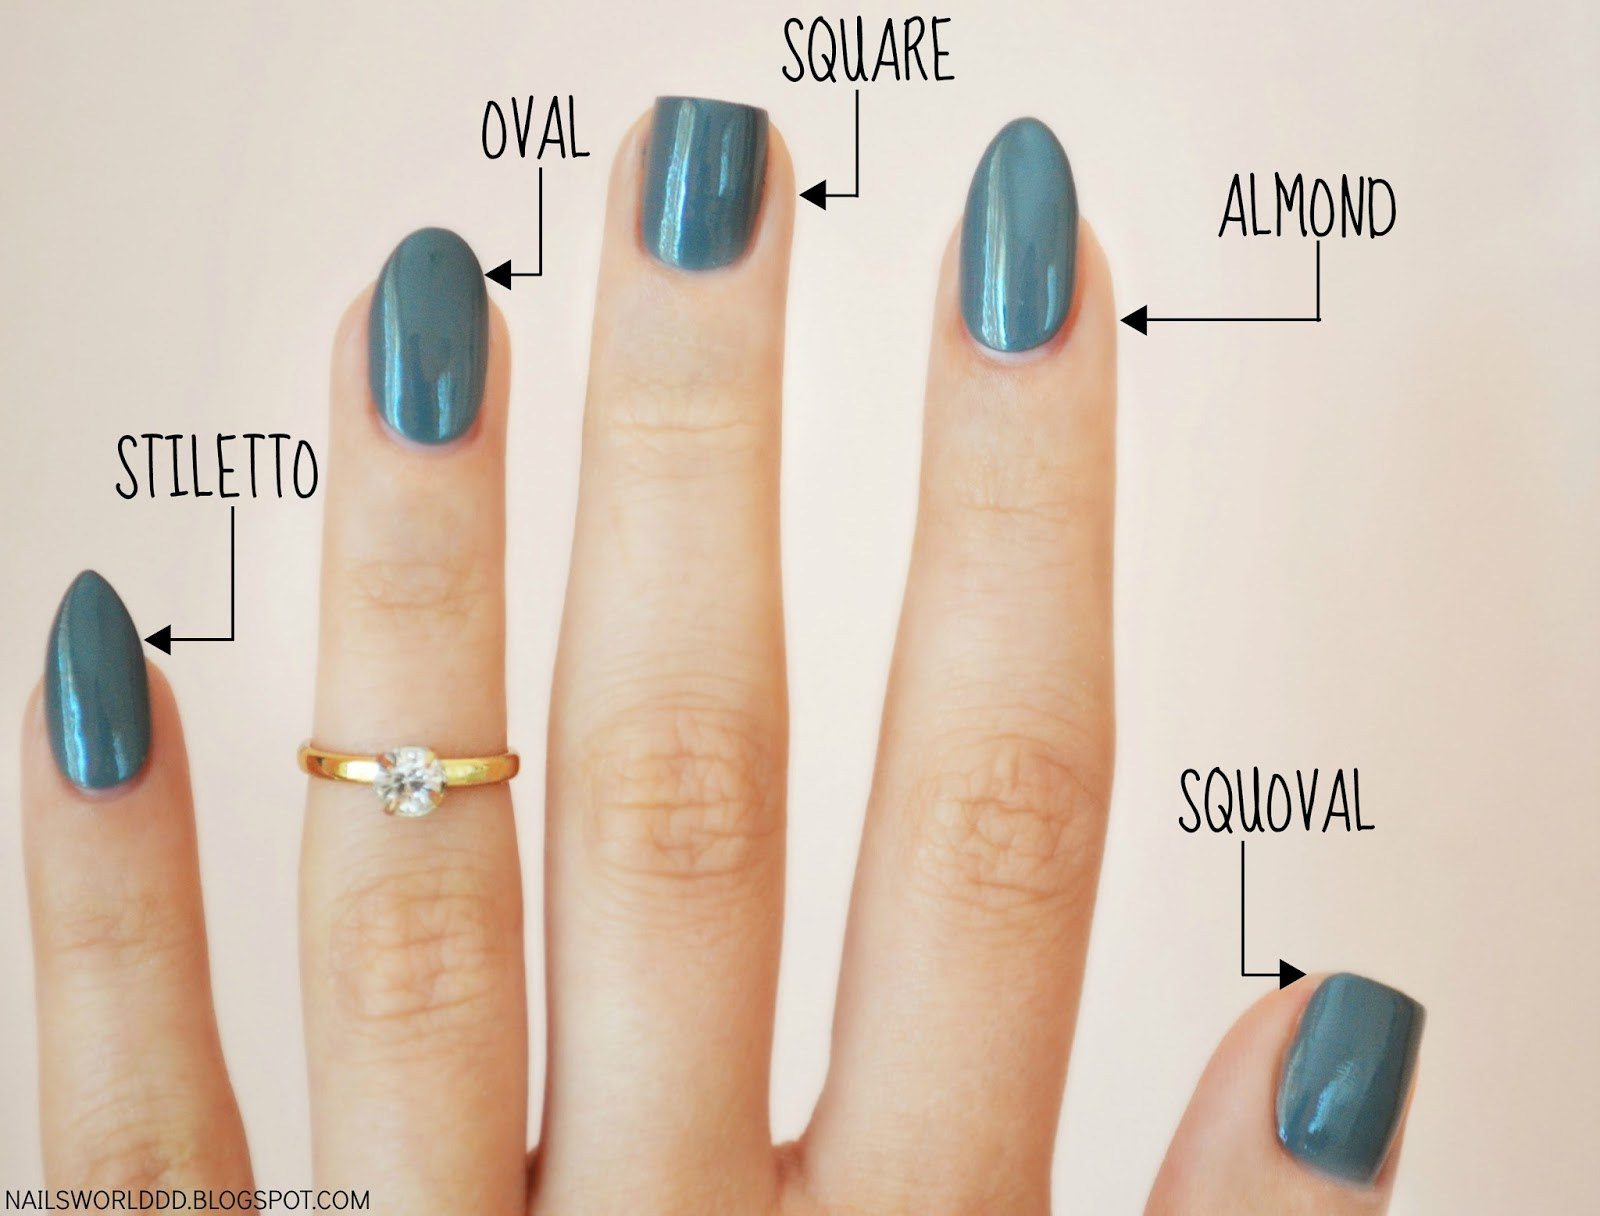 Nail design for fat fingers : Nails world different nail shapes